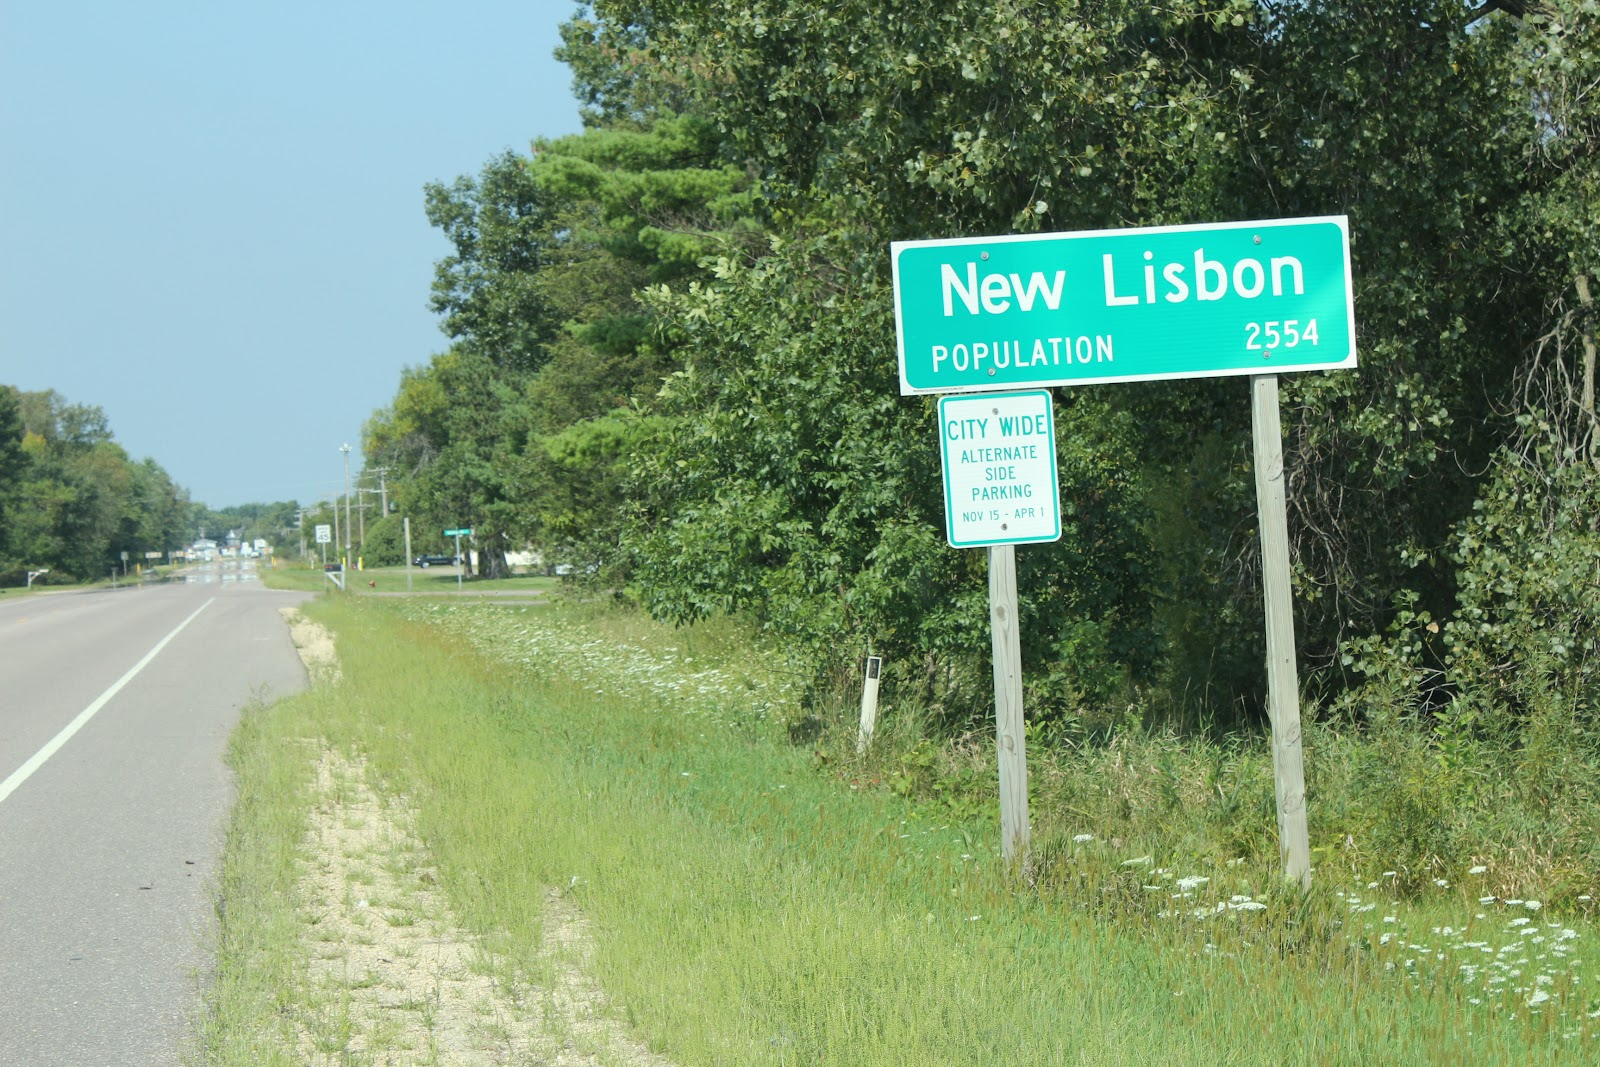 Personals in new lisbon wisconsin New Lisbon Correctional Institution Inmate Search and Prisoner Info - New Lisbon, WI